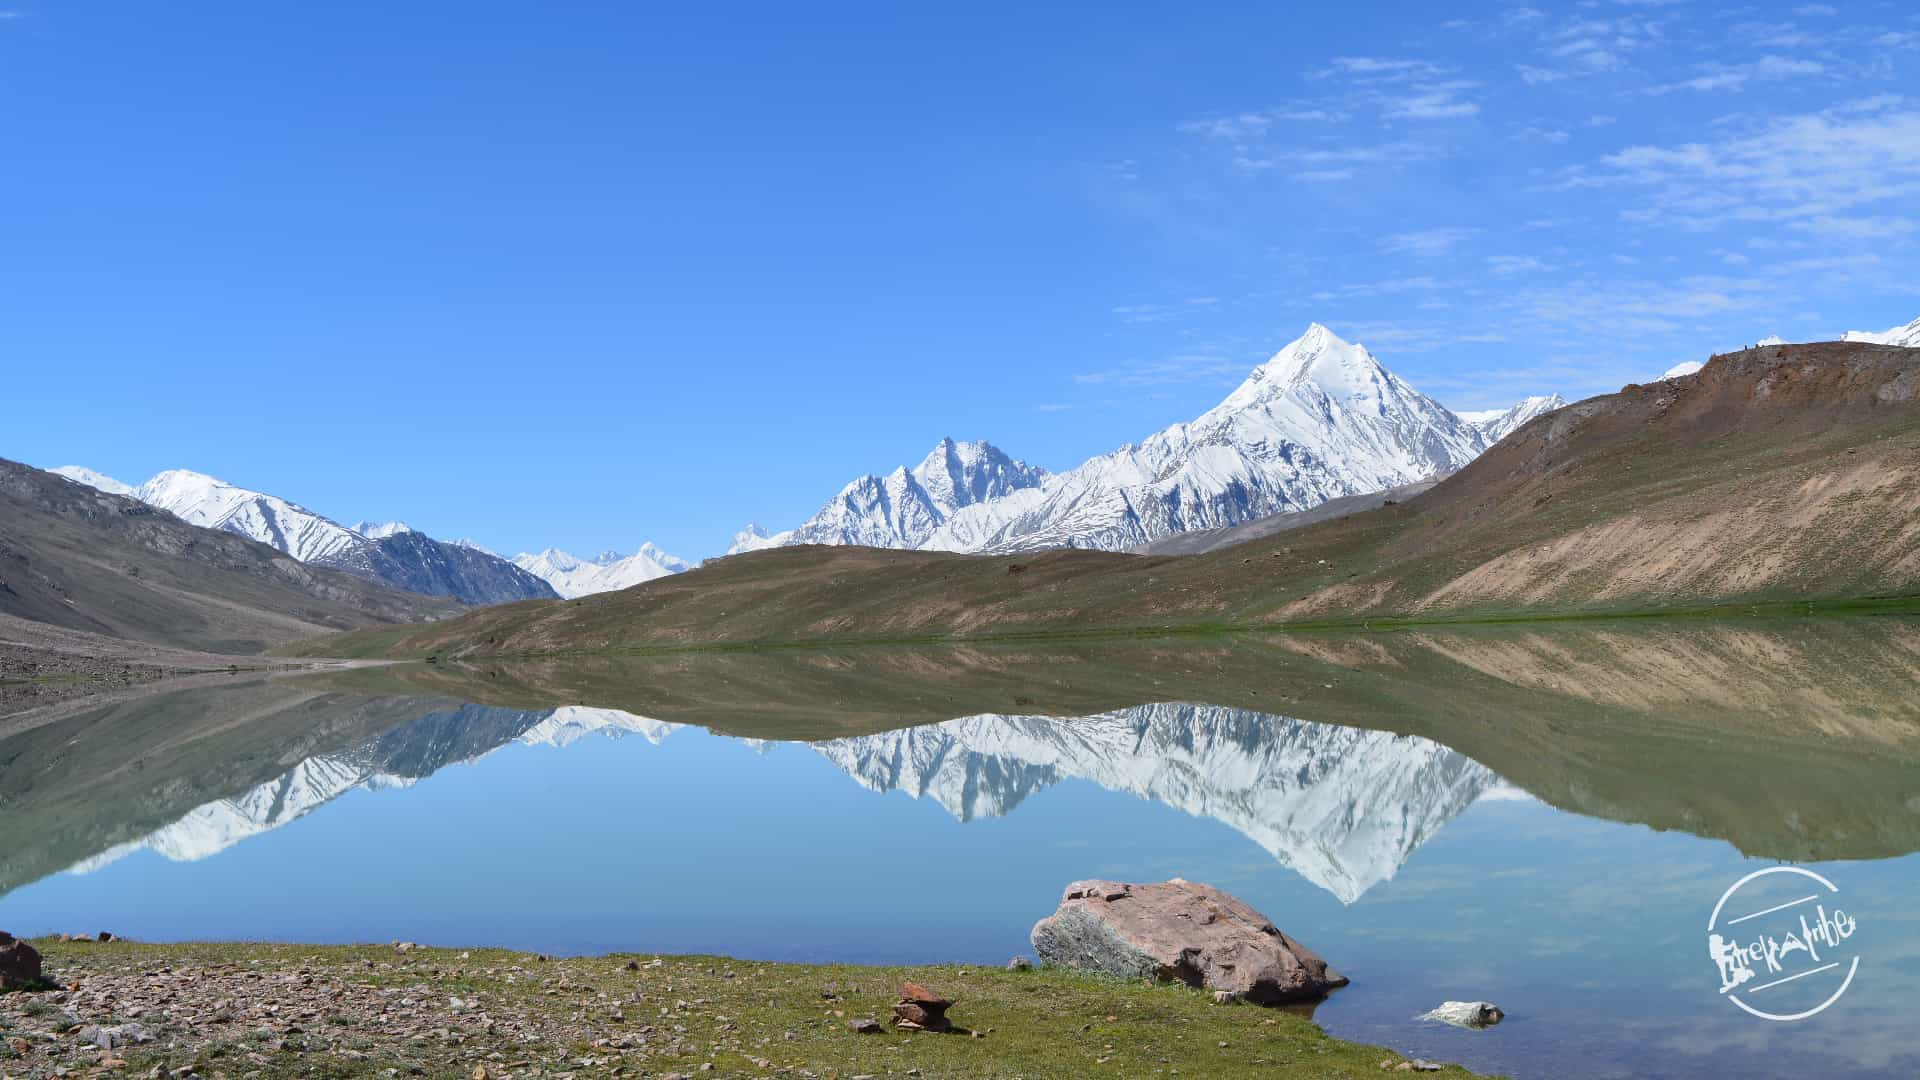 Chandertal lake - Lahaul & Spiti